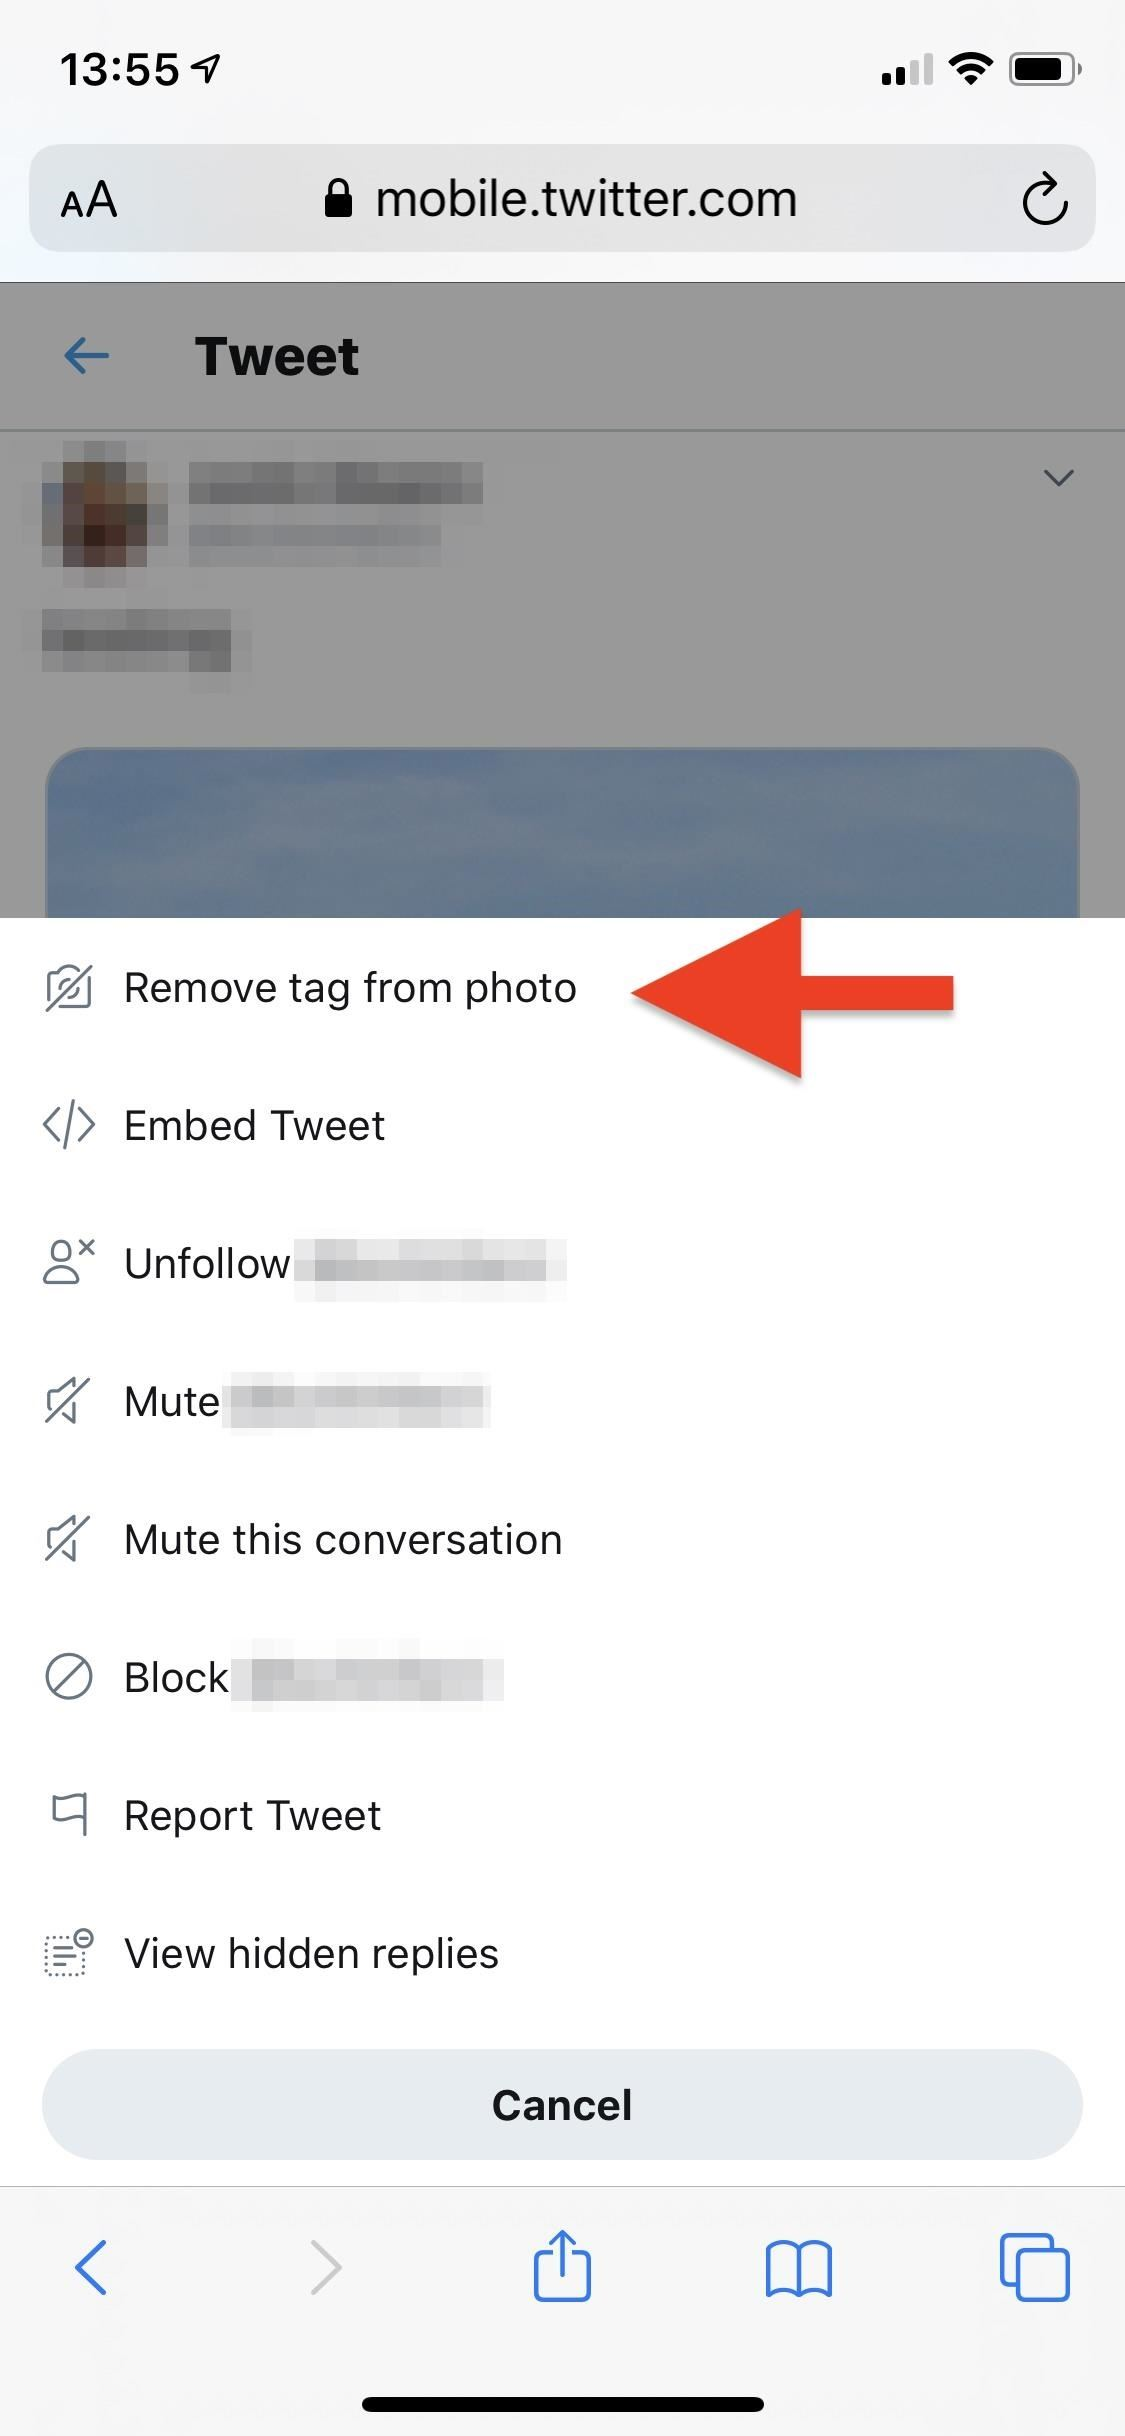 Remove & Disable Photo Tags on Twitter for Better Account Privacy